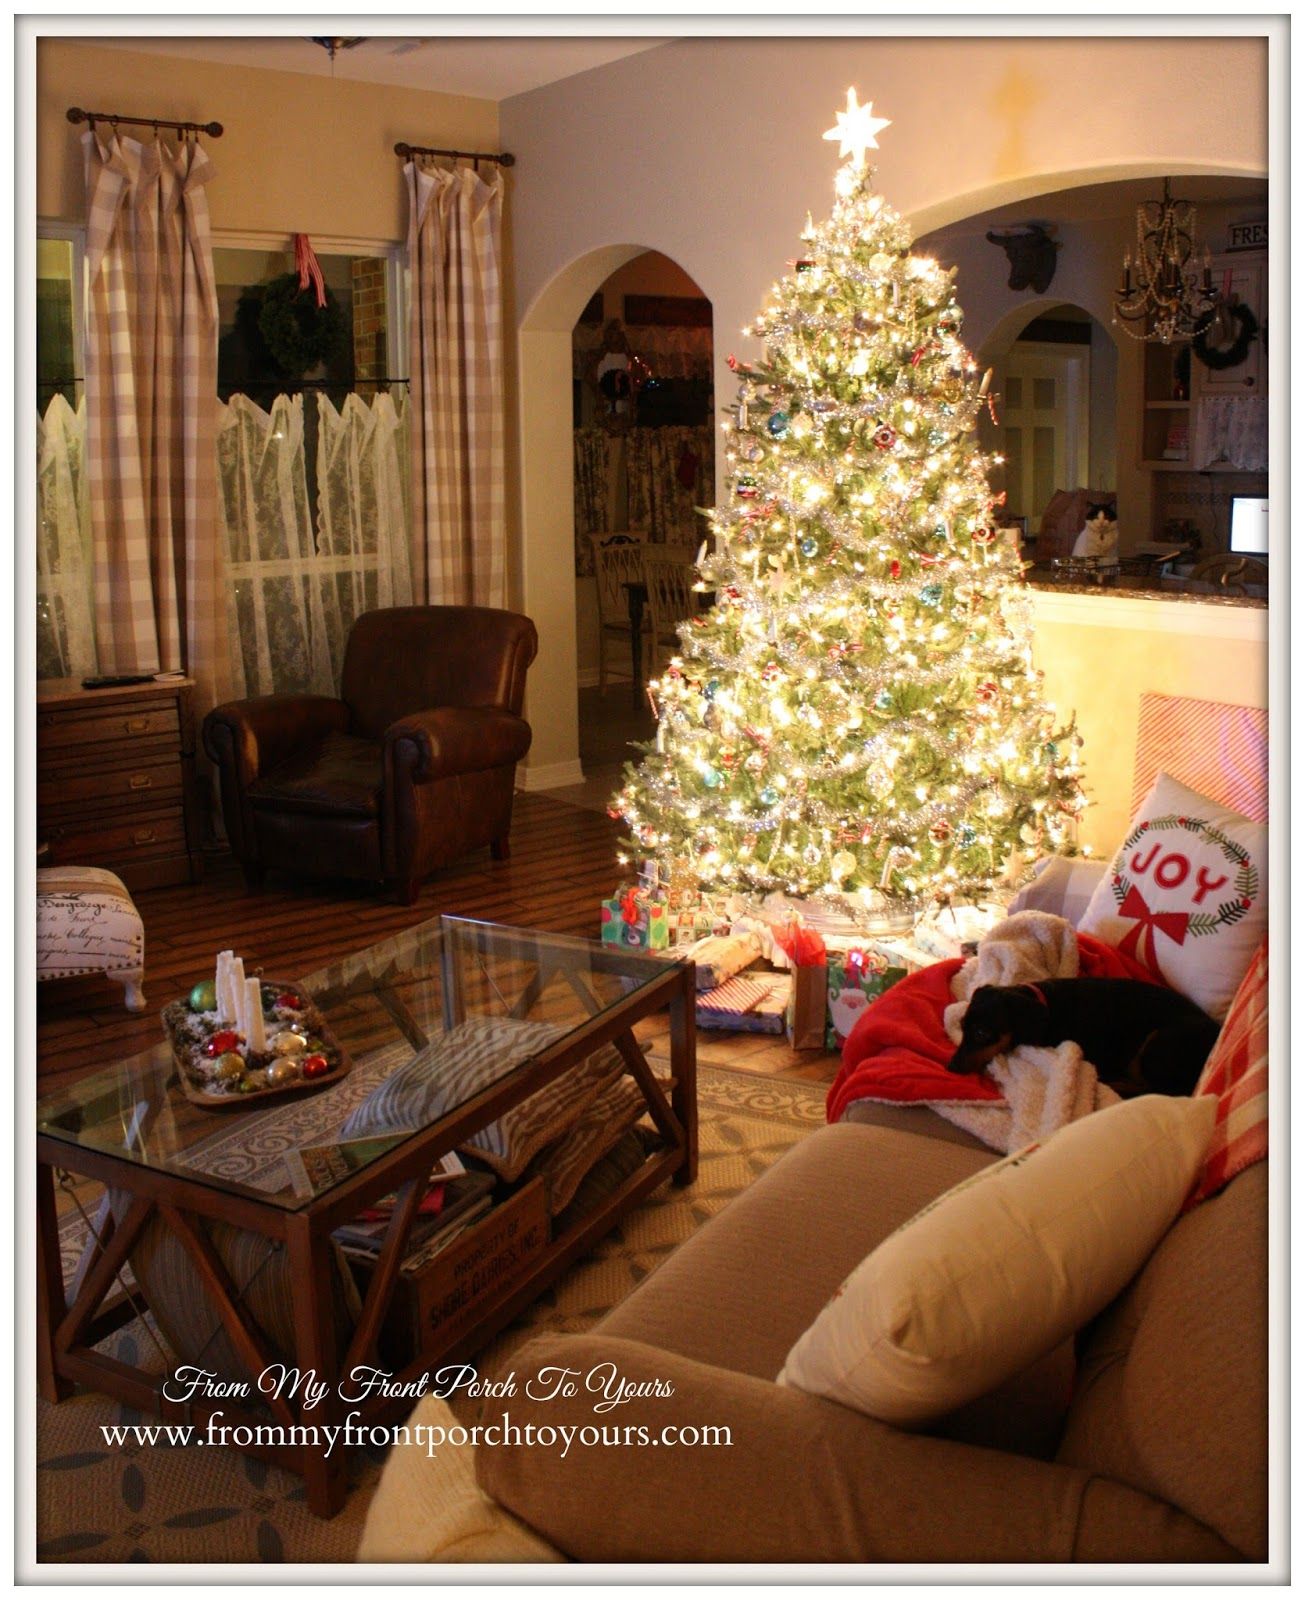 Farmhouse -Vintage-Christmas- Living Room-Lights-at night-magical- From My Front Porch To Yours